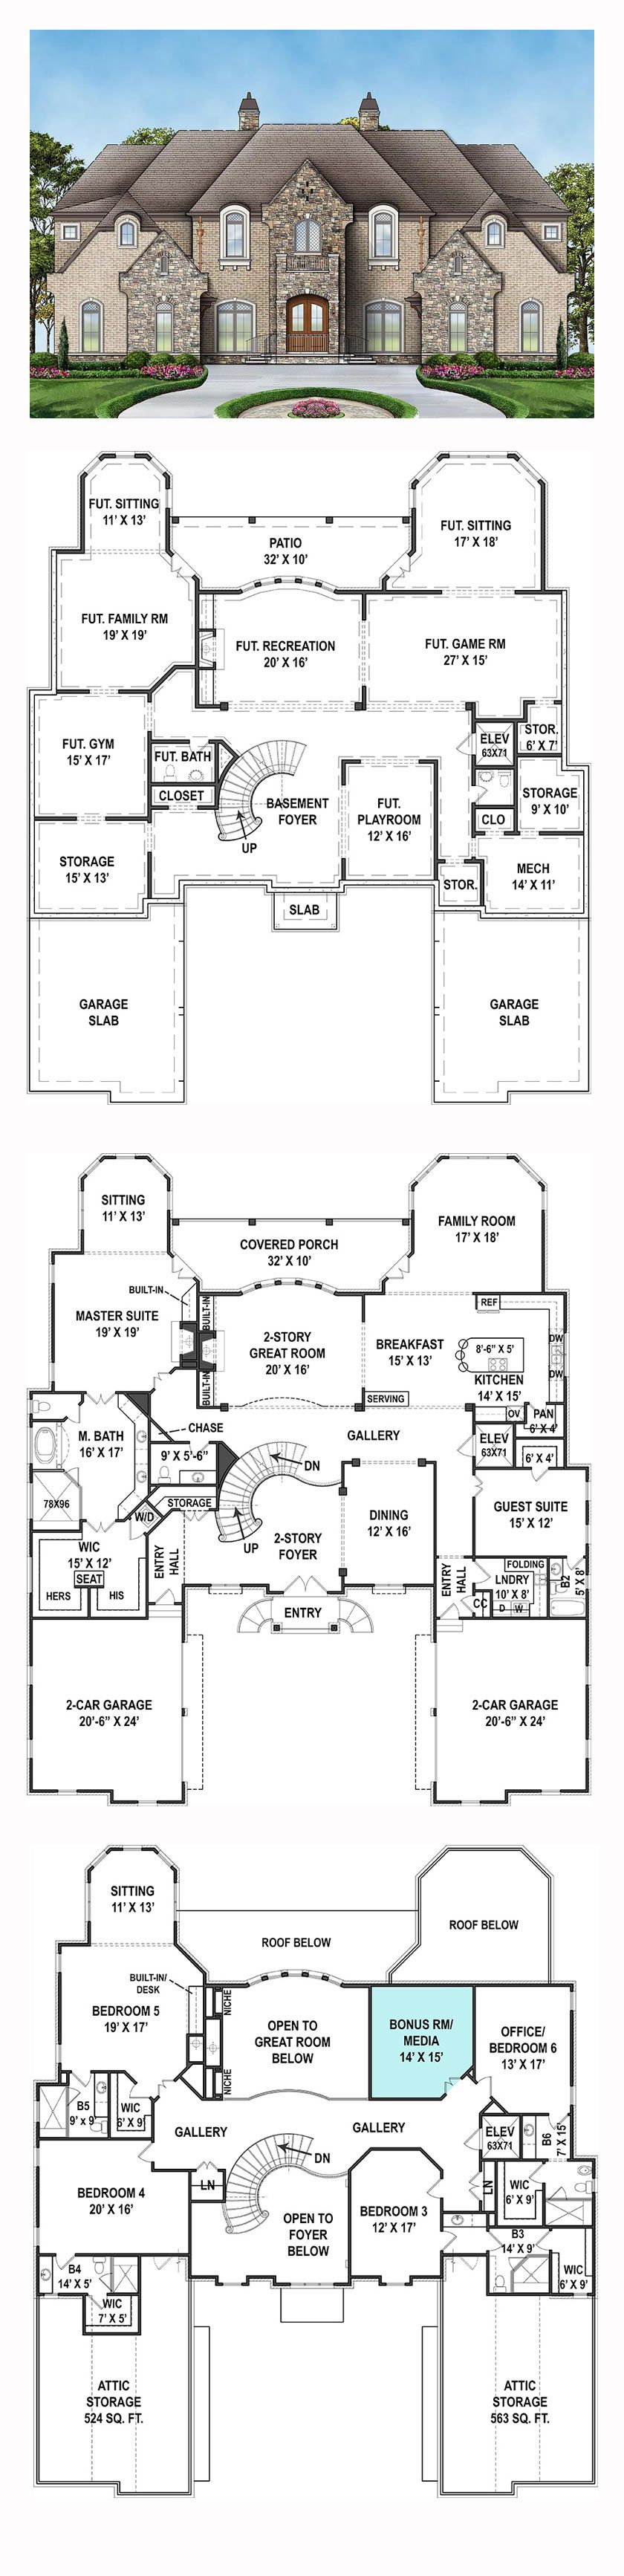 New House Plan 72171   Total Living Area  6072 sq  ft   6 bedrooms     New House Plan 72171   Total Living Area  6072 sq  ft   6 bedrooms and 6 5  bathrooms   newhomeplan